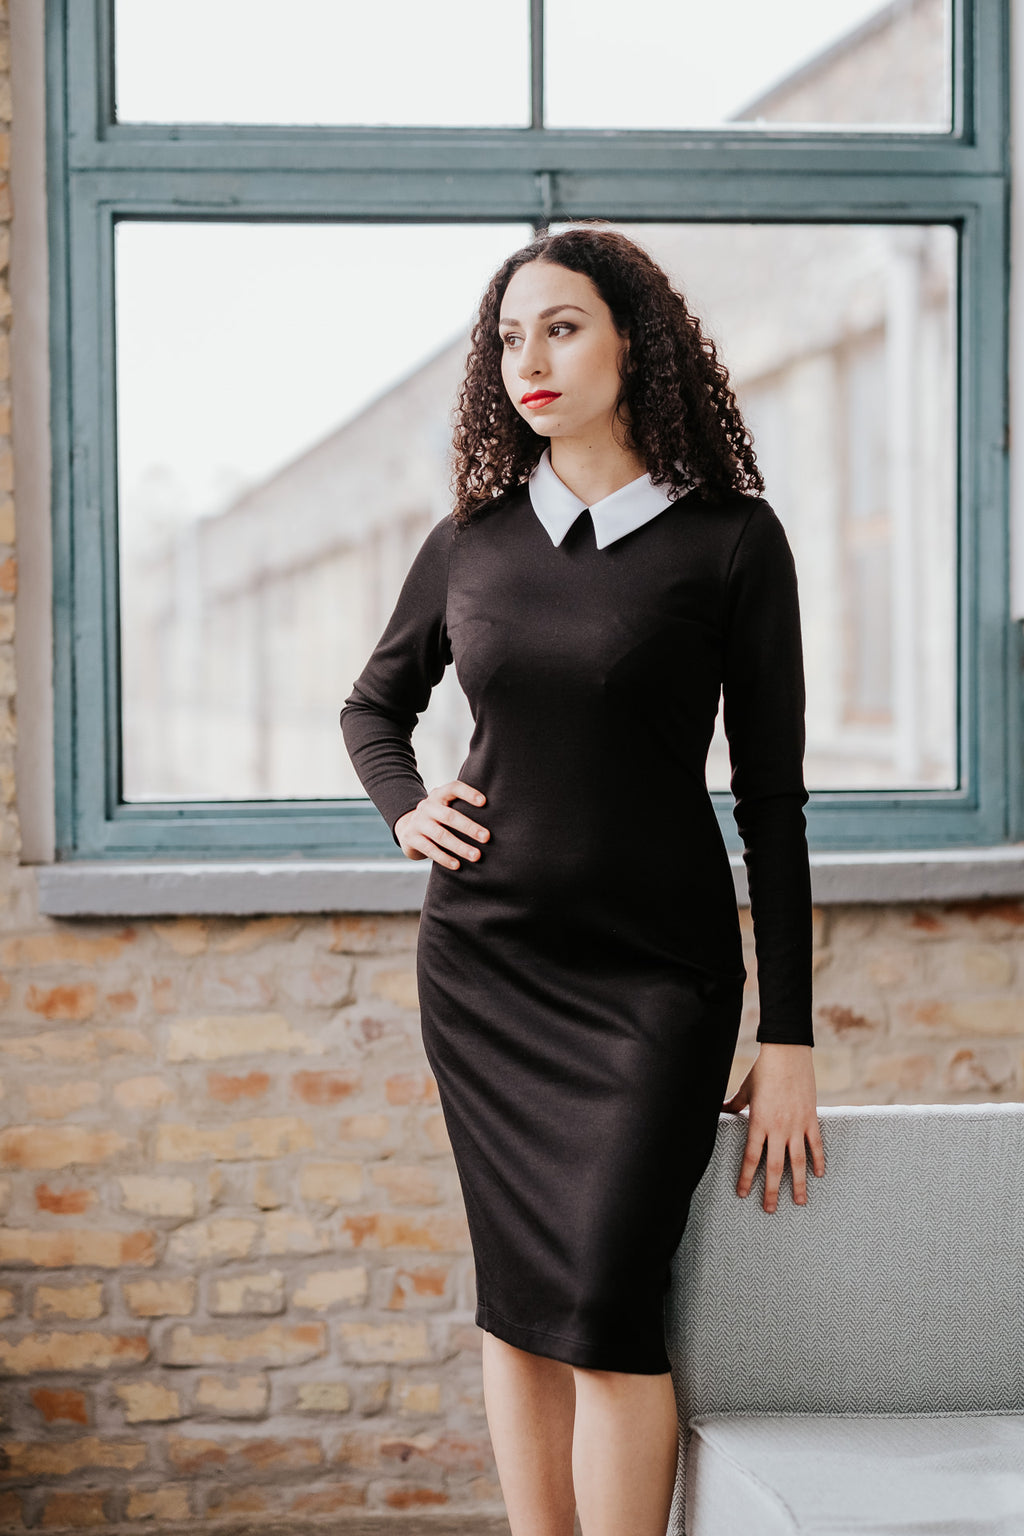 Long sleeve white collar duchess black dress in Dress - New York Black Dress